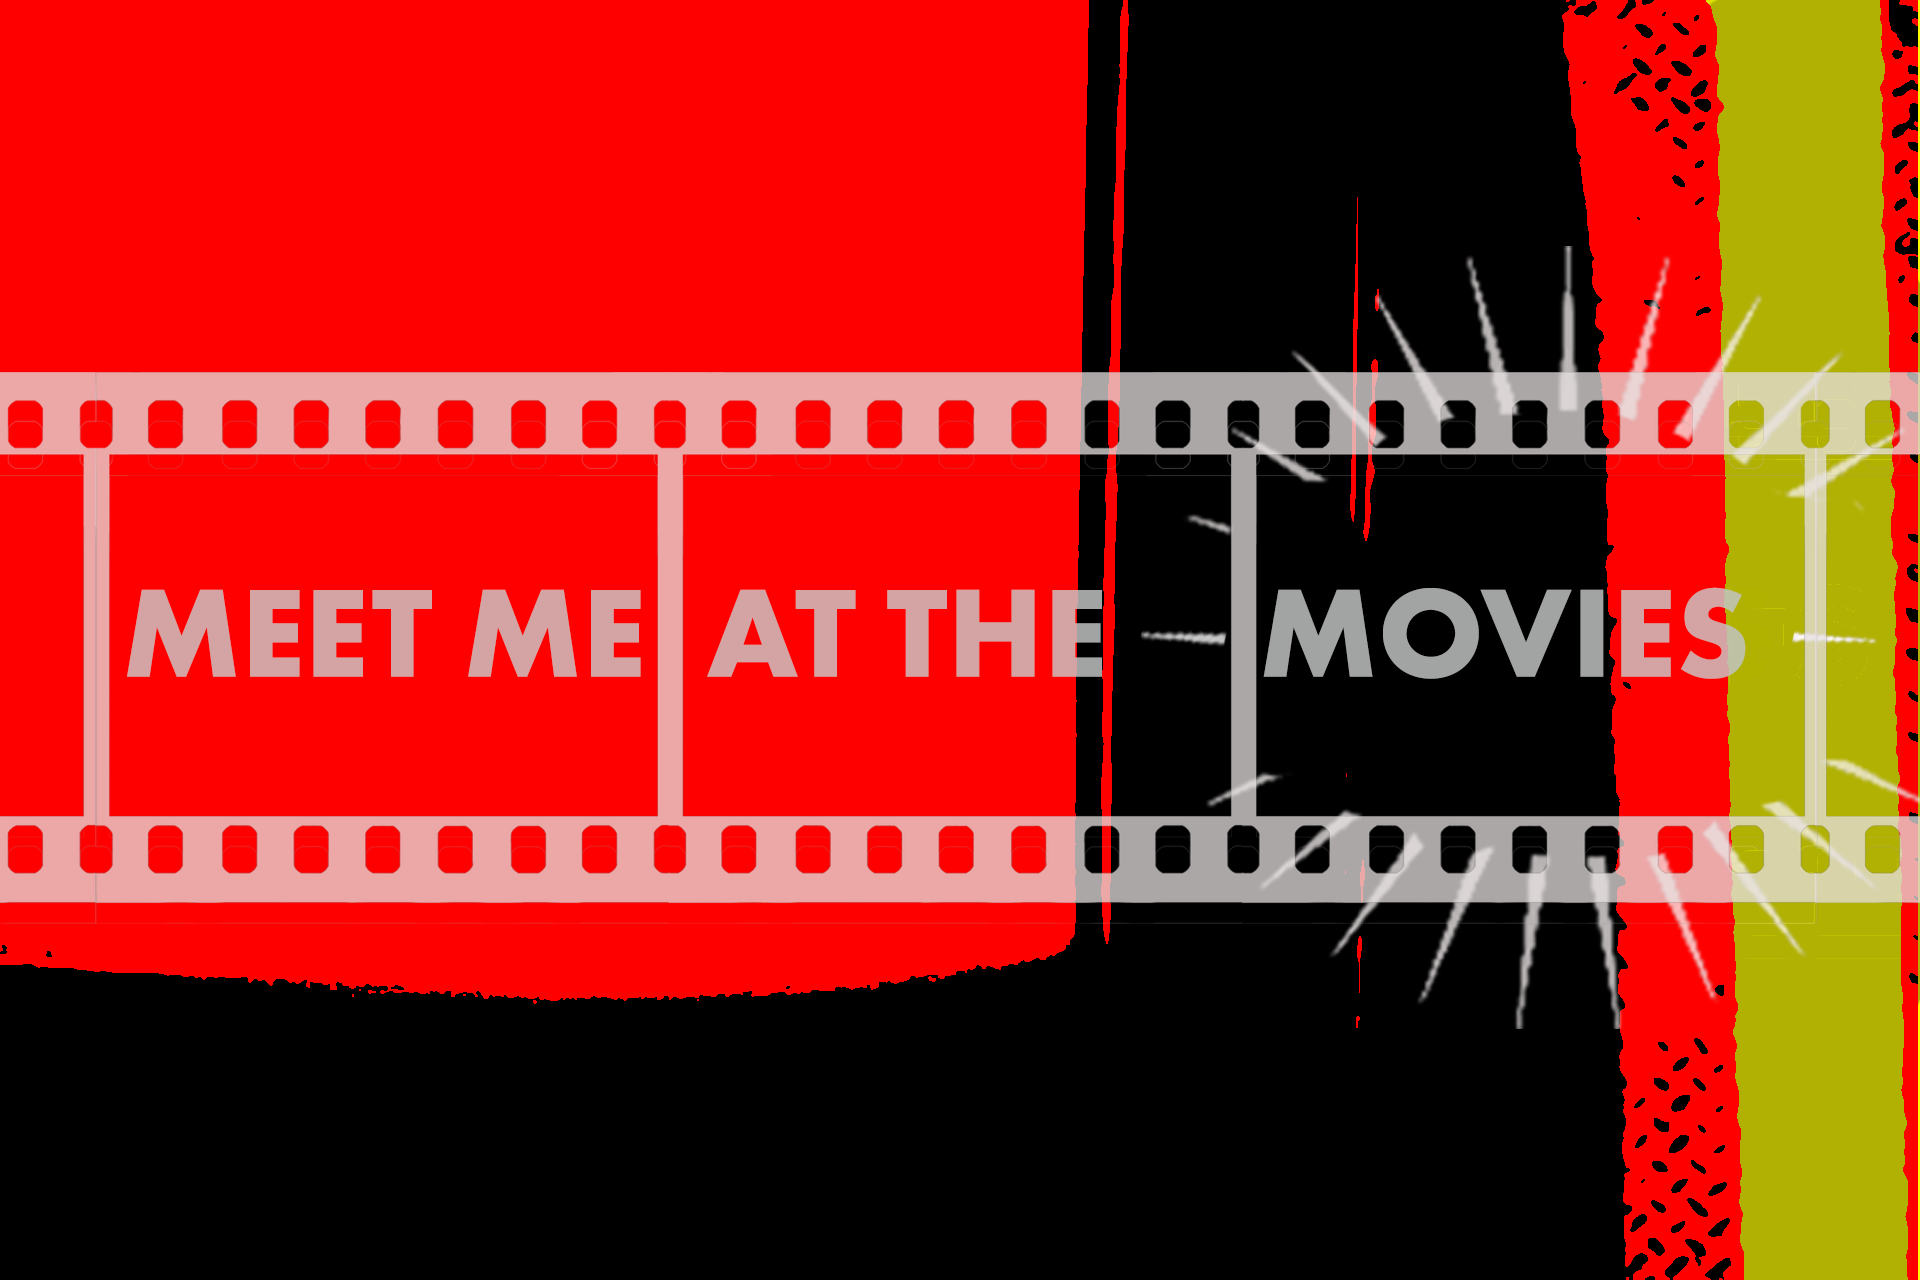 Meet Me at the Movies  is an innovative program from Artists for Alzheimer's & the I'm Still Here Foundation for the seniors afflicted with Alzheimer's and other conditions causing memory loss.